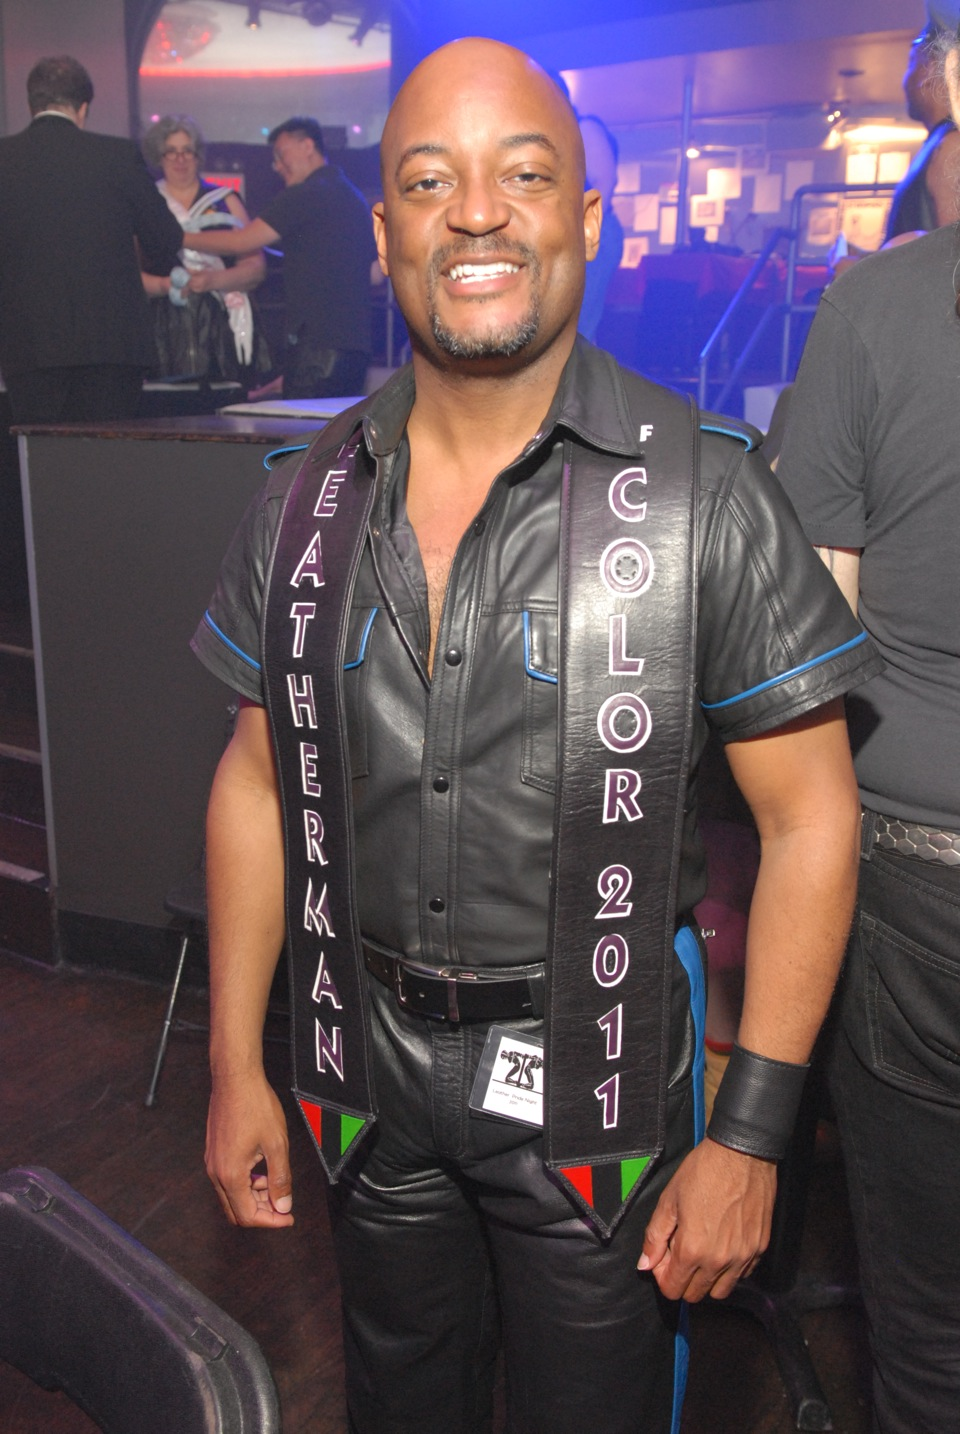 leathermanofcolor2011